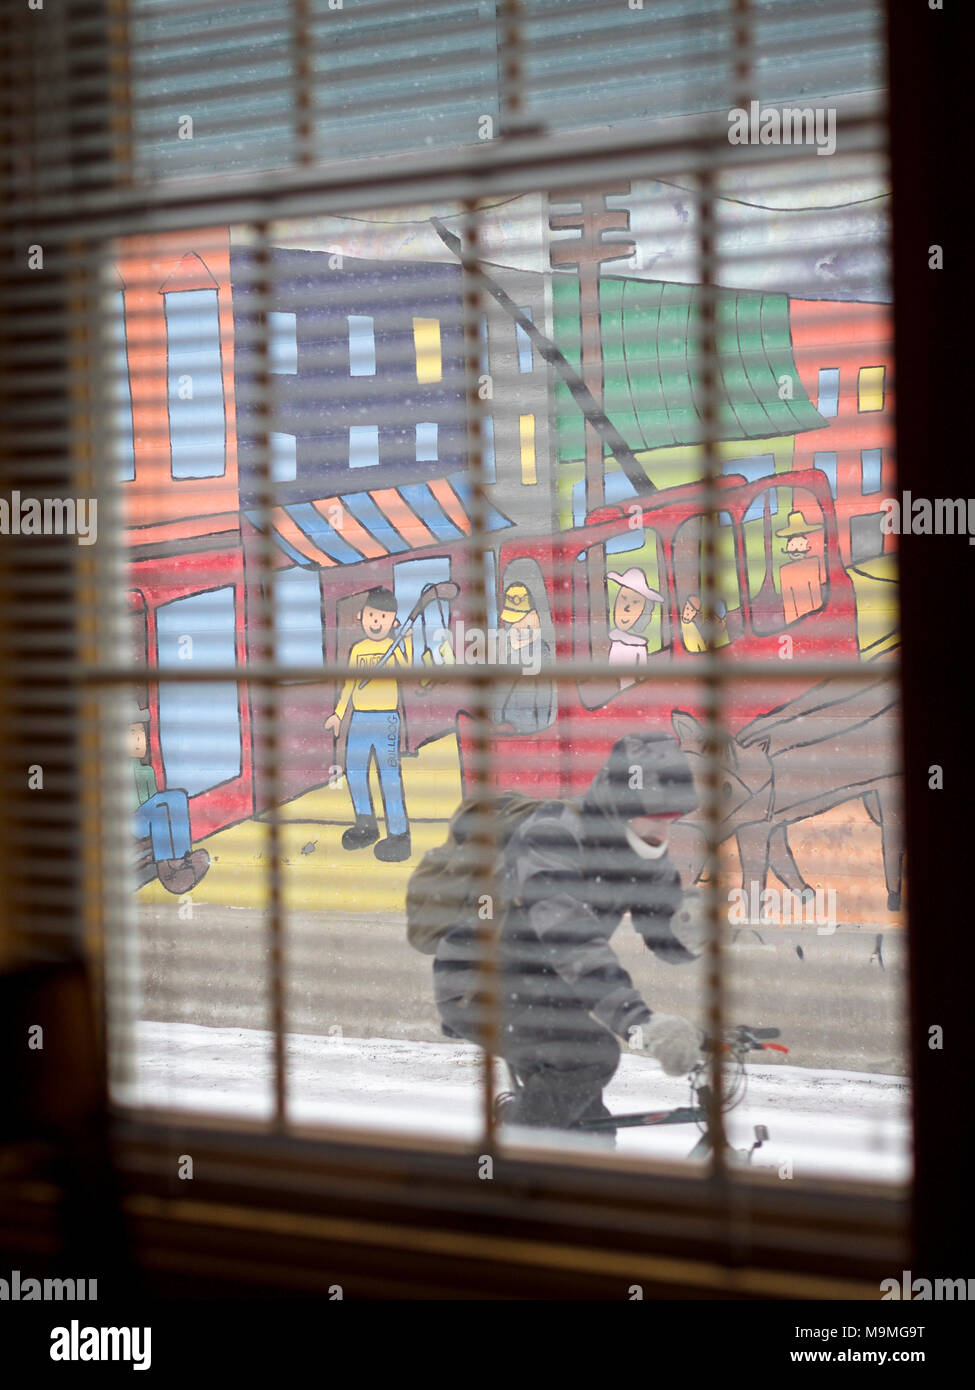 A cyclist rides by a bright mural as viewed through a window: A naive style mural decorates a wall on a small Quebec City street.  A bicyclist rides by as seen through a pained, blinded window on a snowy cold day. - Stock Image